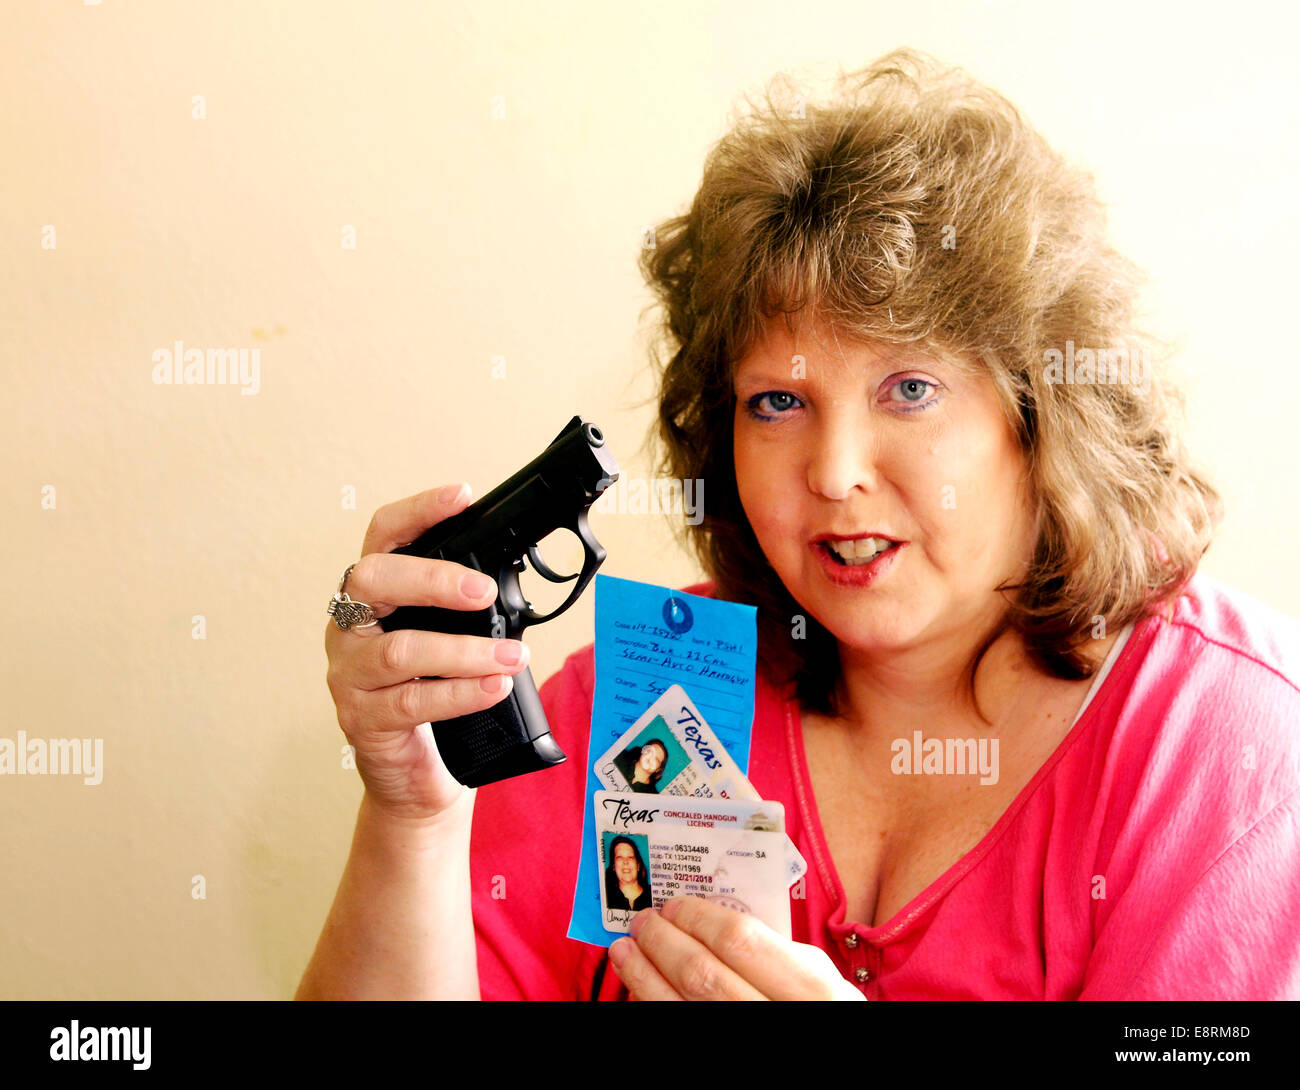 Woman in Texas has a permit for concealed handgun, but police still confiscated her hand gun. - Stock Image